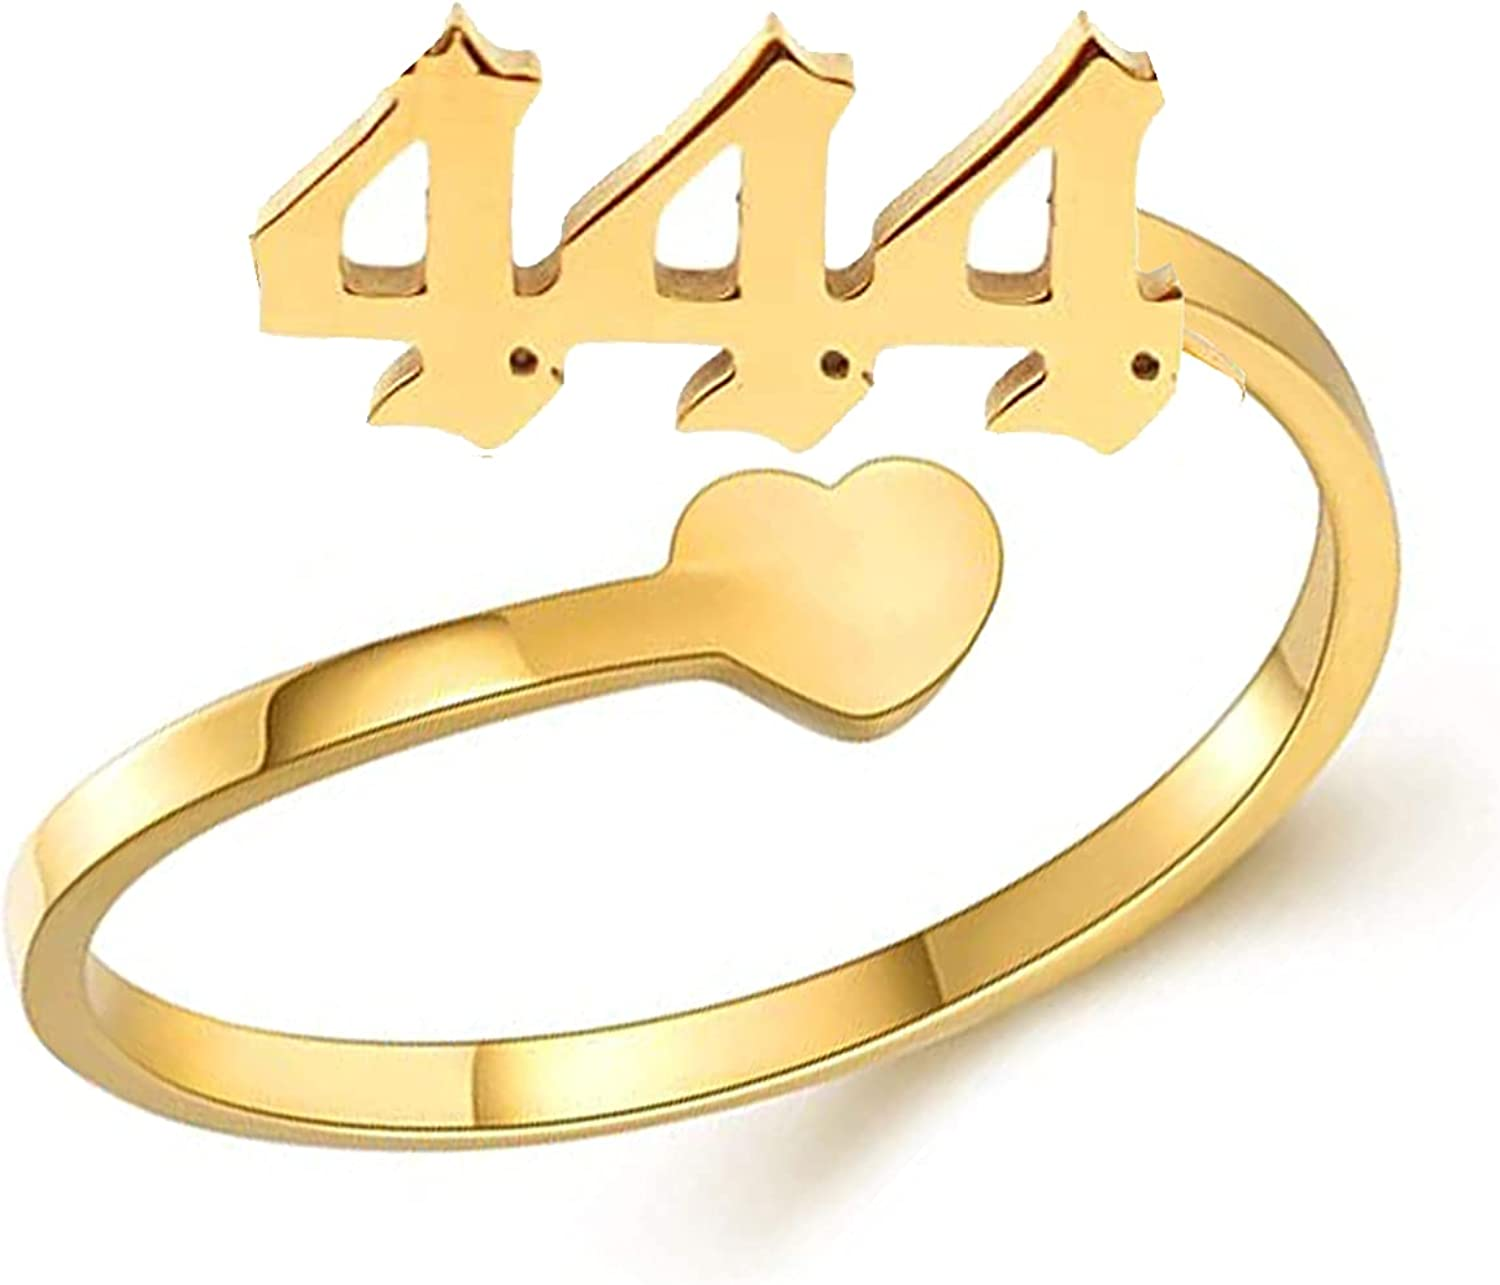 BABIYA Angel Rings for Women, Gold Plated Dainty 111 222 333 444 555 666 777 888 999 Numerology Rings for Women…